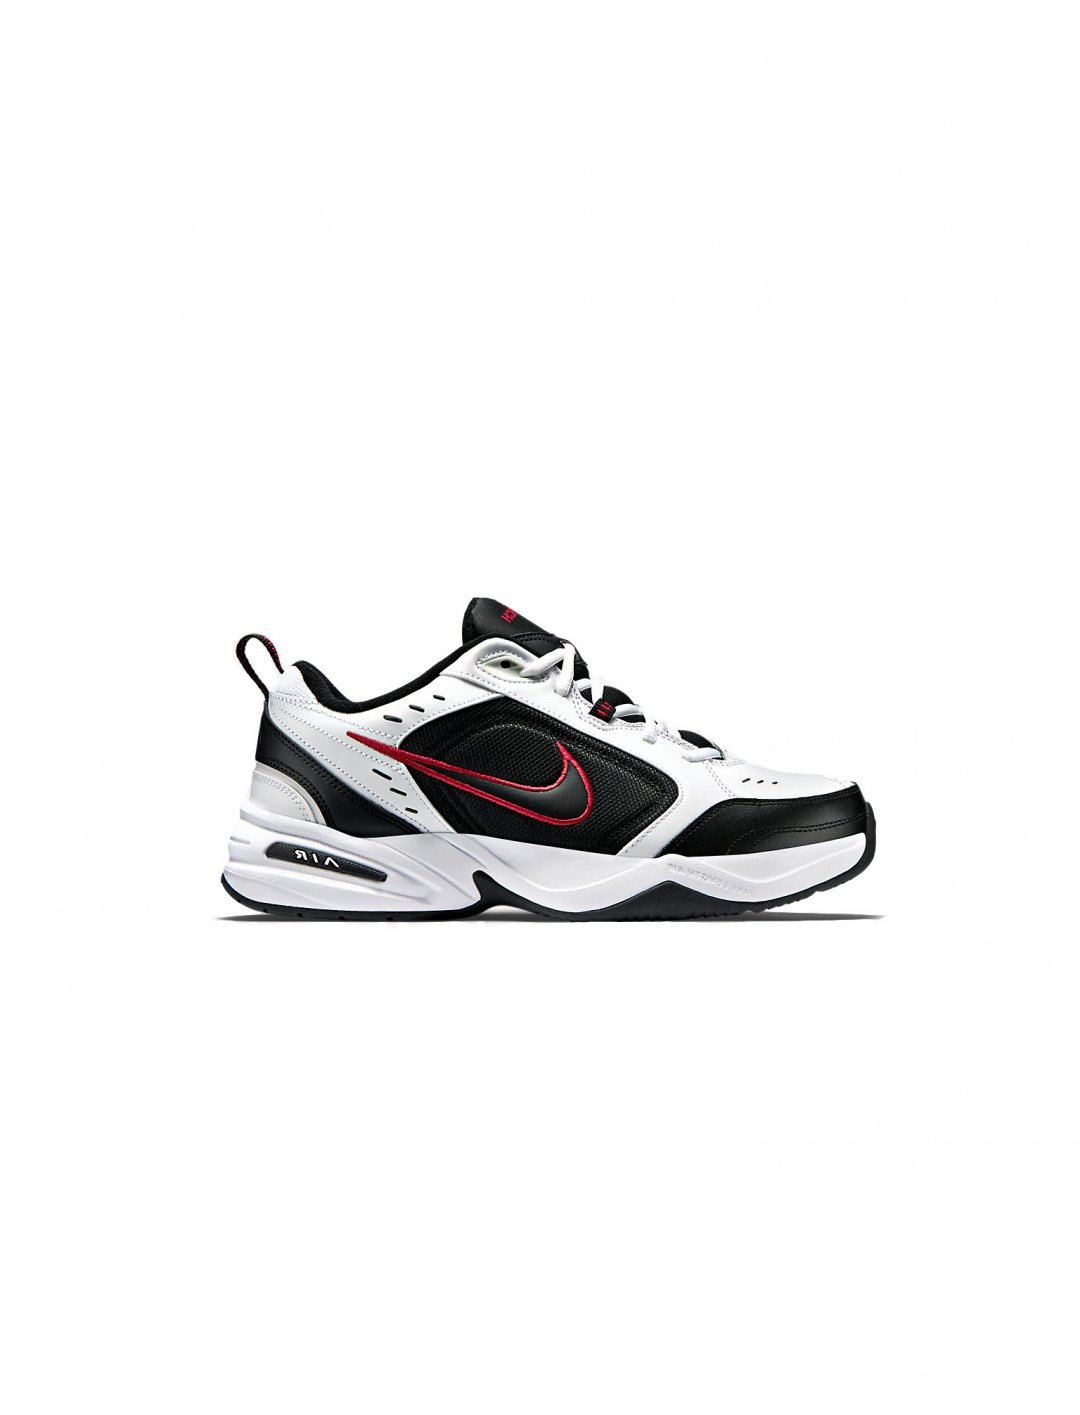 "Nike Air Monarch IV {""id"":12,""product_section_id"":1,""name"":""Shoes"",""order"":12} Nike"